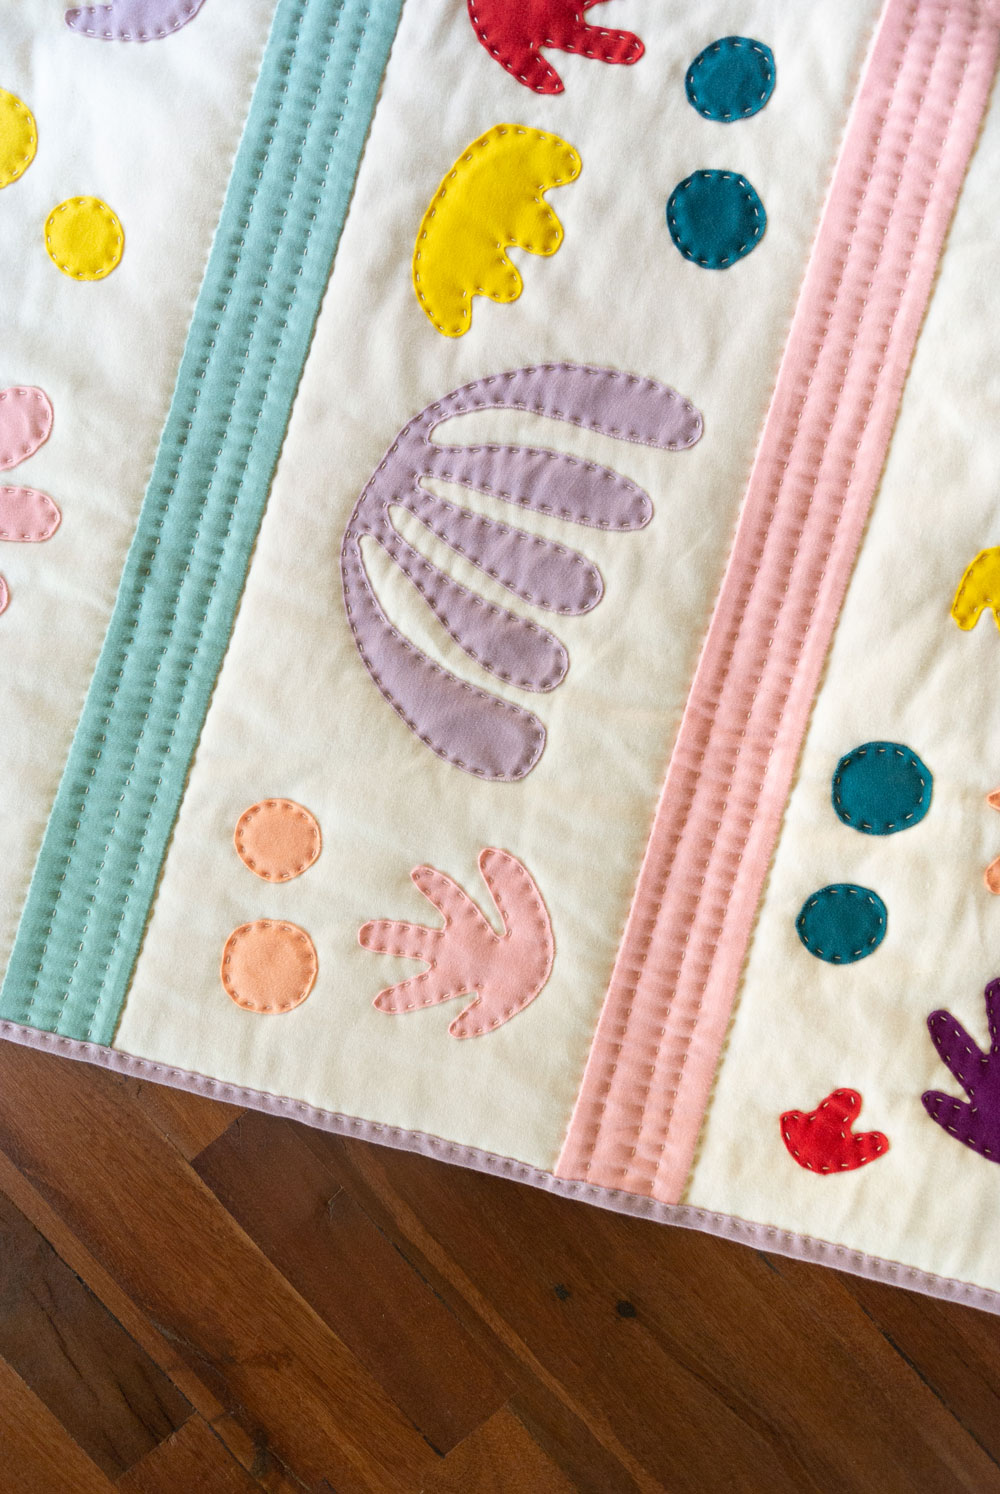 Hand sewing my jersey knit quilt. This Bohemian Garden quilt pattern was inspired by the paper cut-outs of Henri Matisse